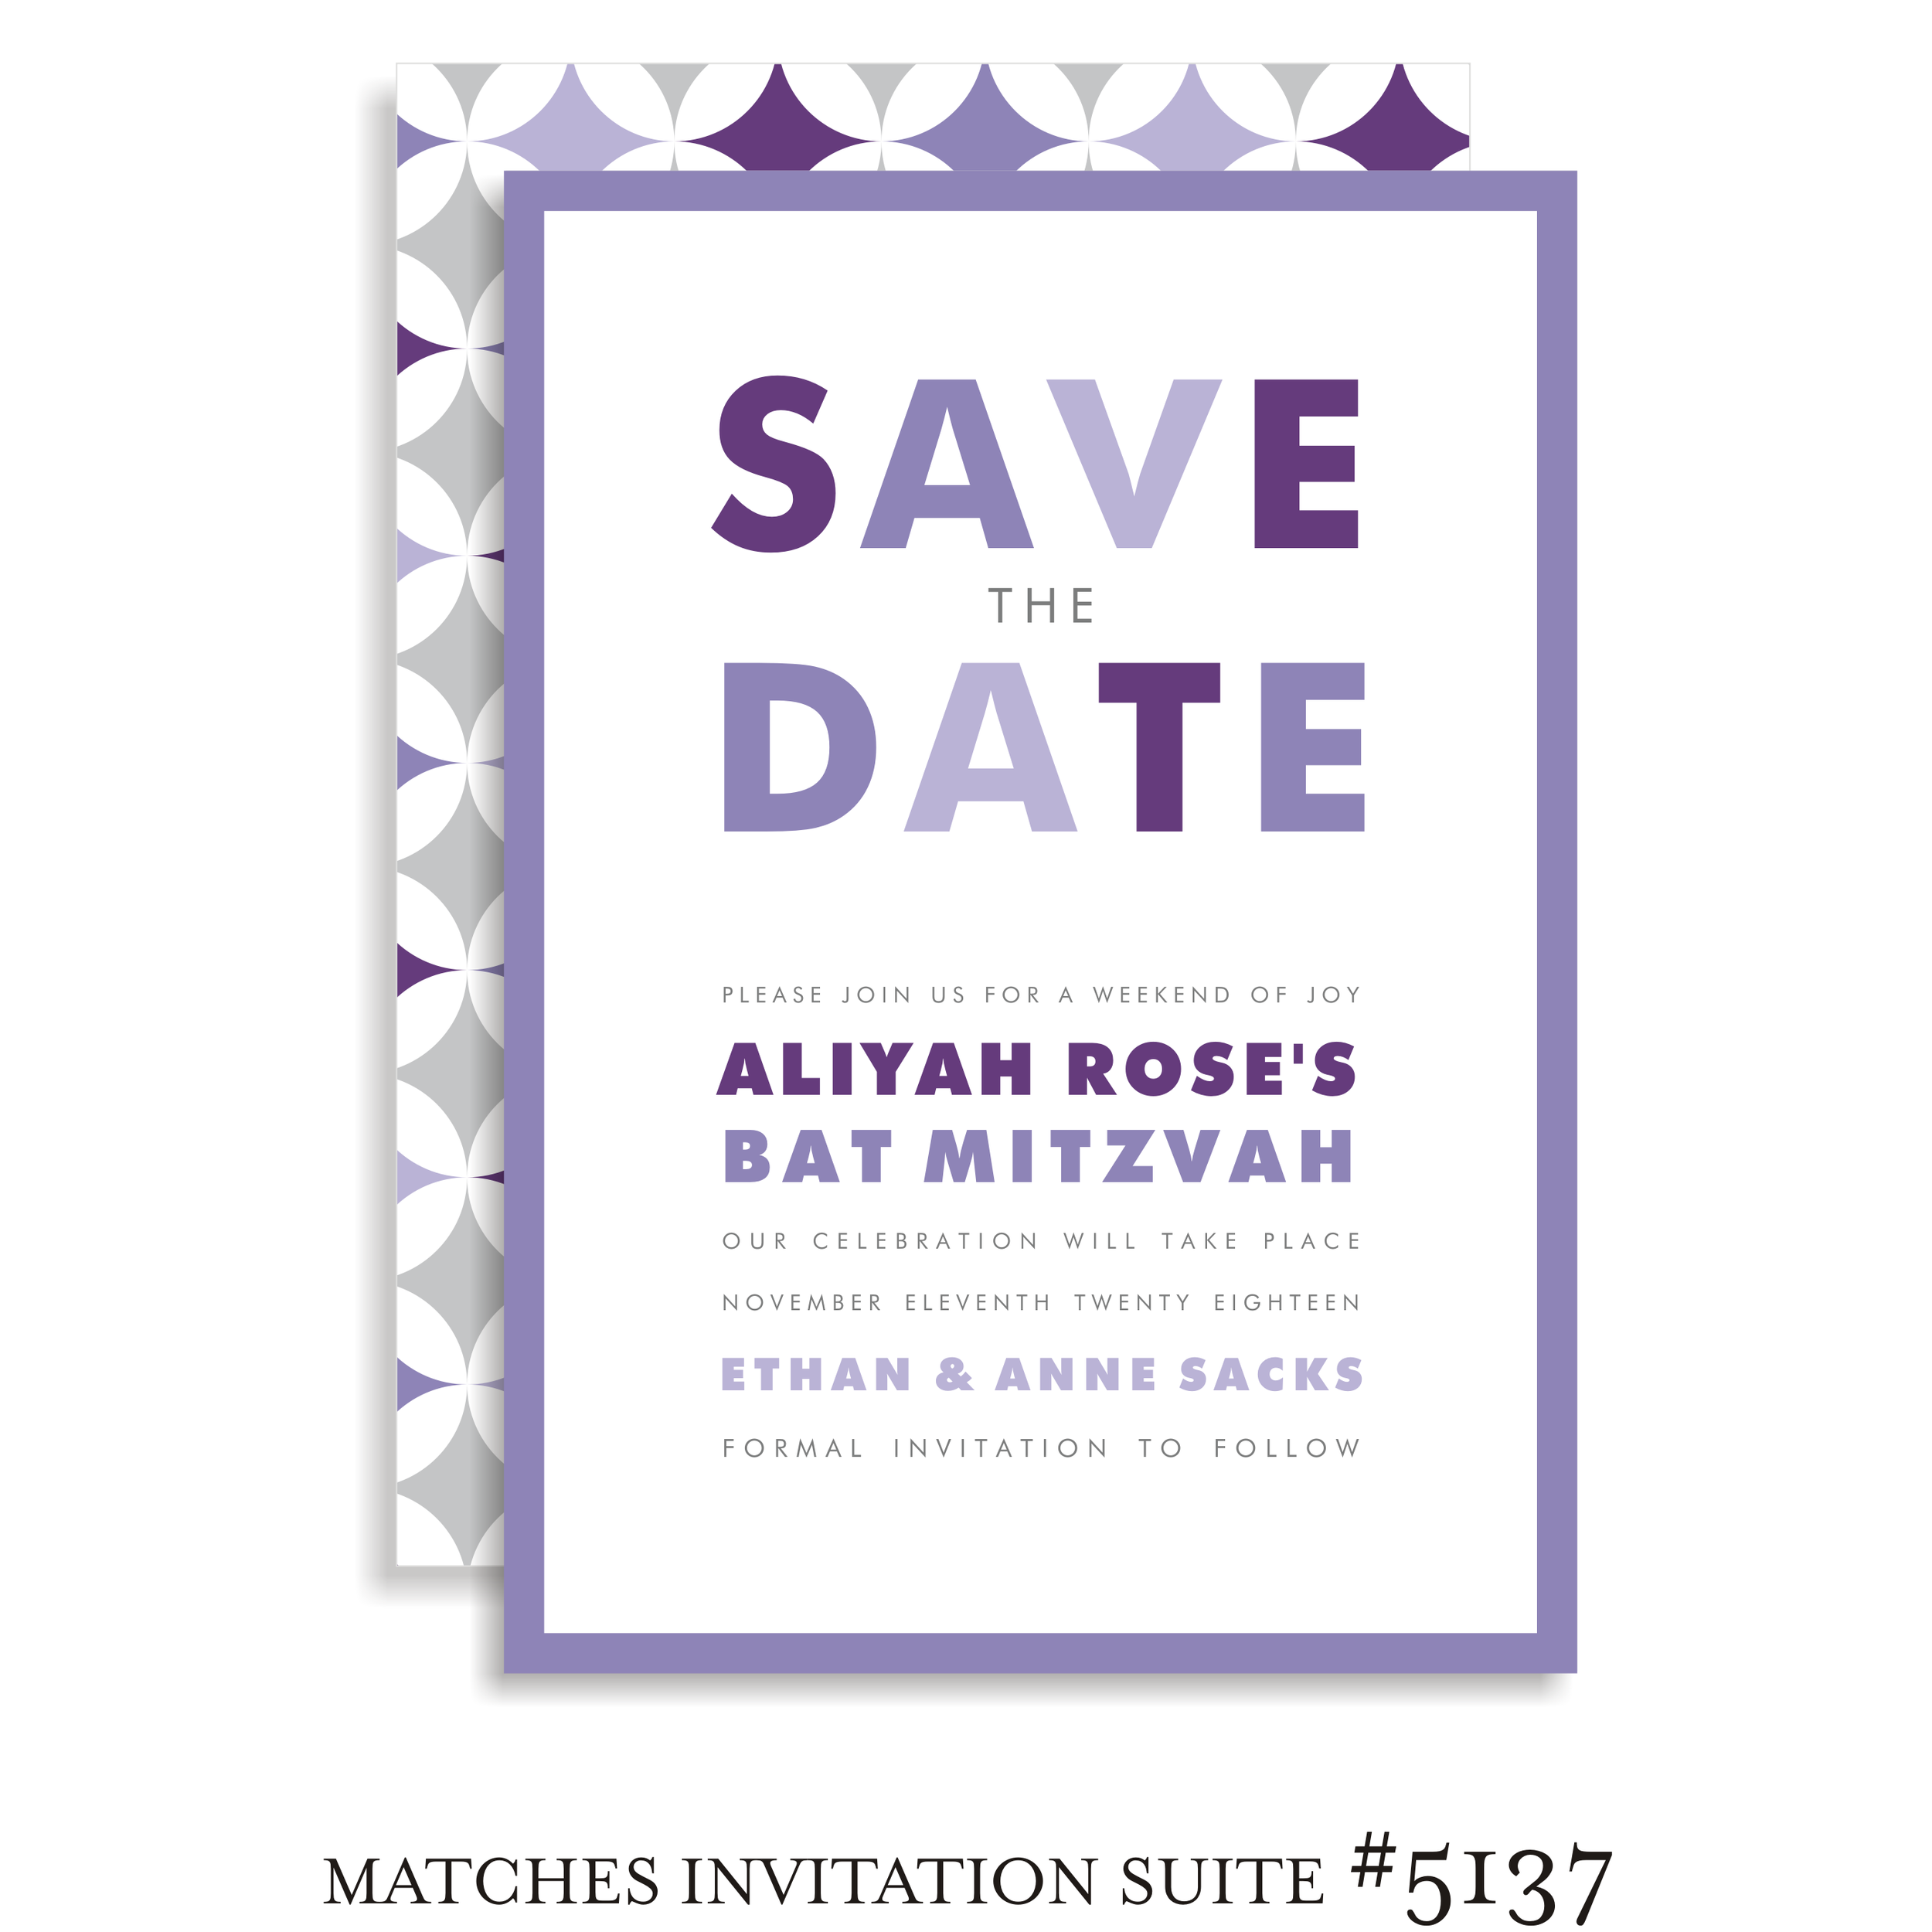 Save the Date Suite 5137 - Aliyah Rose